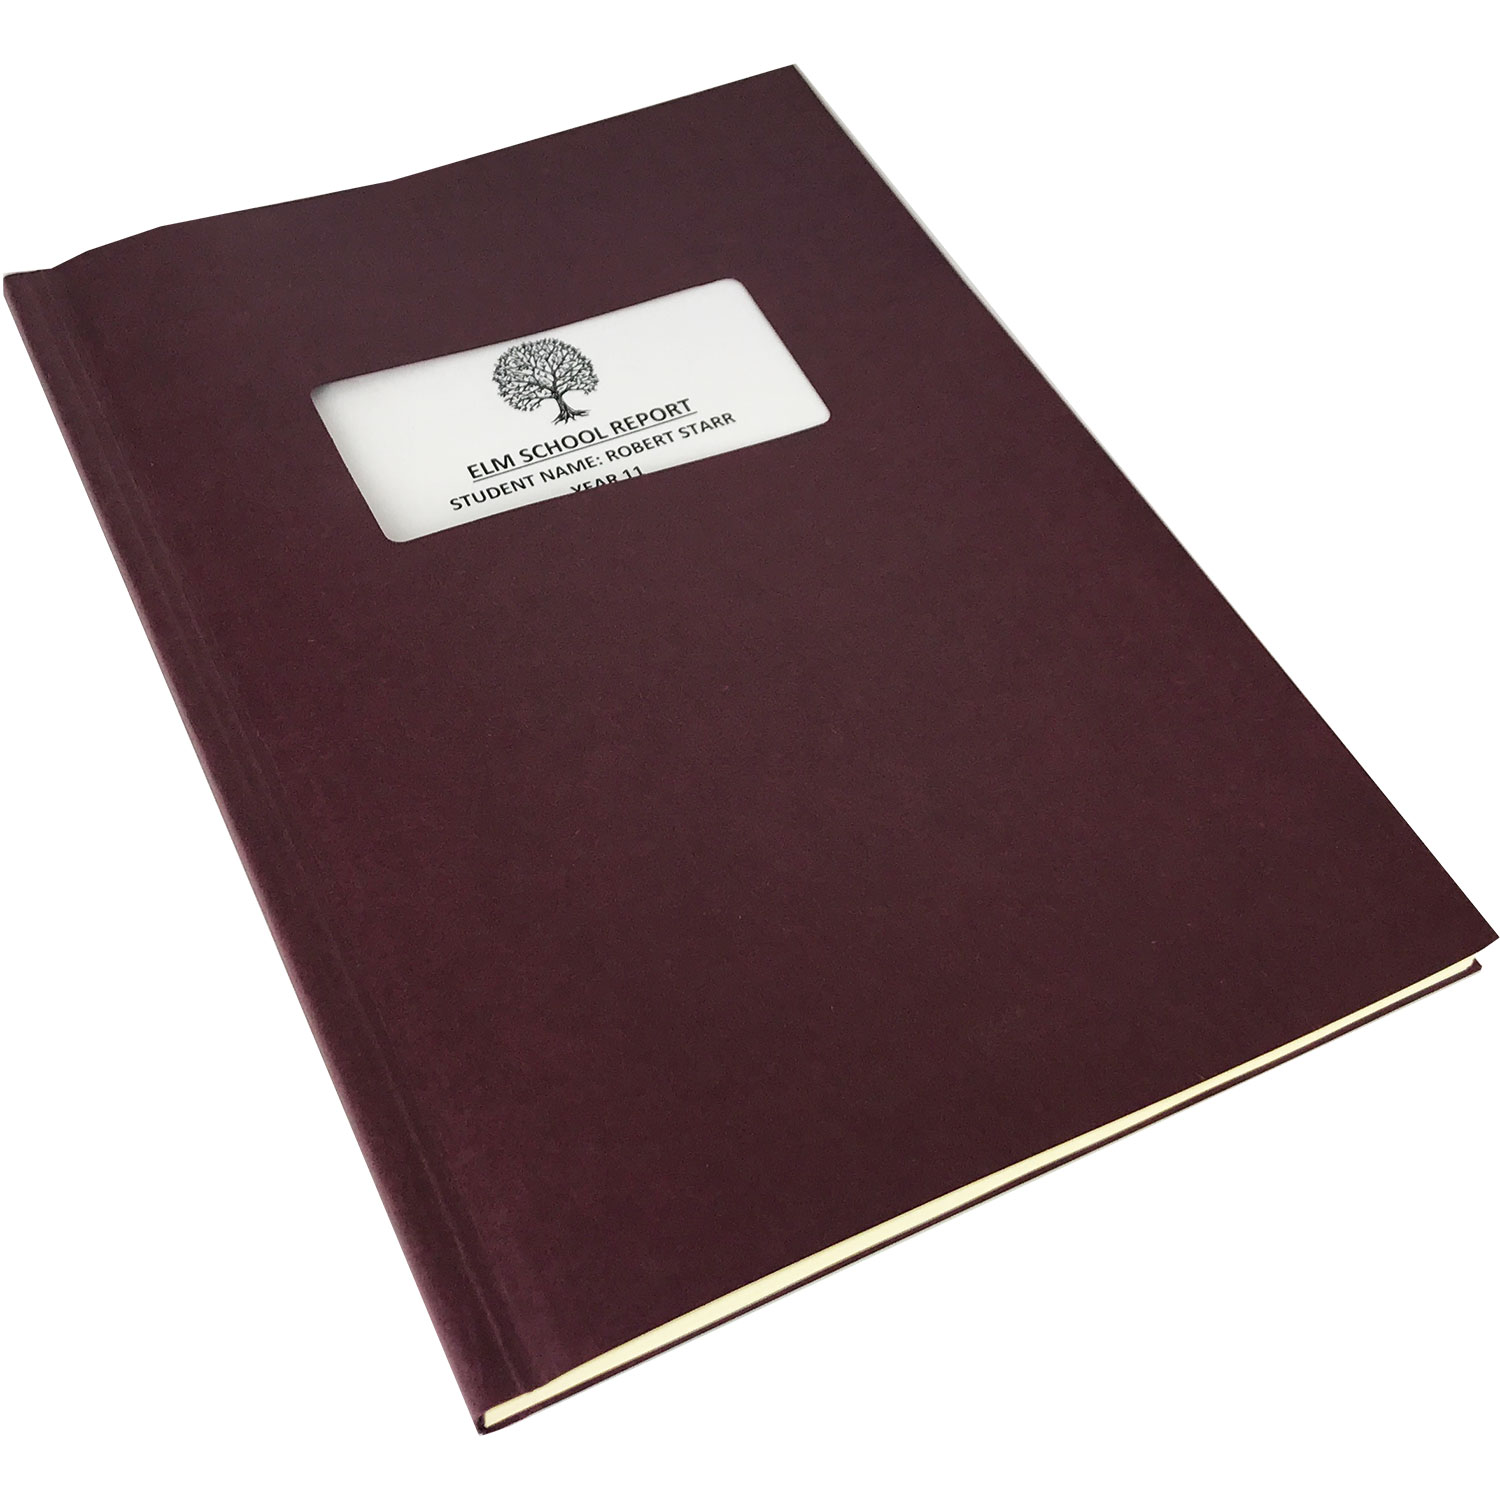 Channelbind A4 Soft-Window Cut-Out Binding Covers -Burgundy (50)